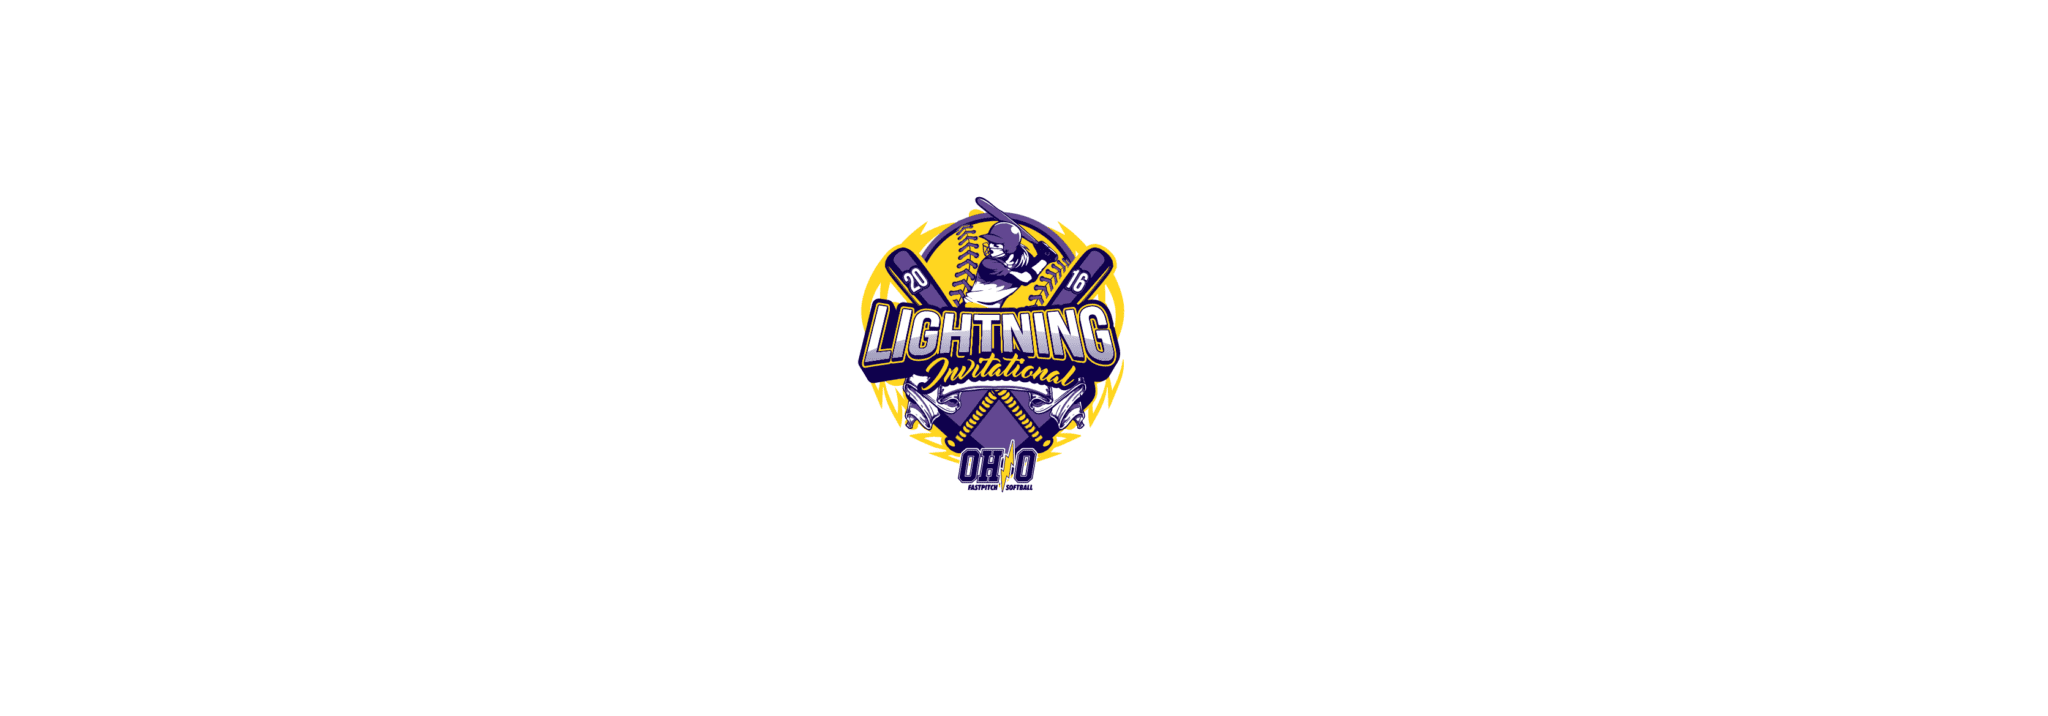 VECTOR LOGO DESIGN FOR PRINT LIGHTNING INVITATIONAL SOFTBALL EVENT